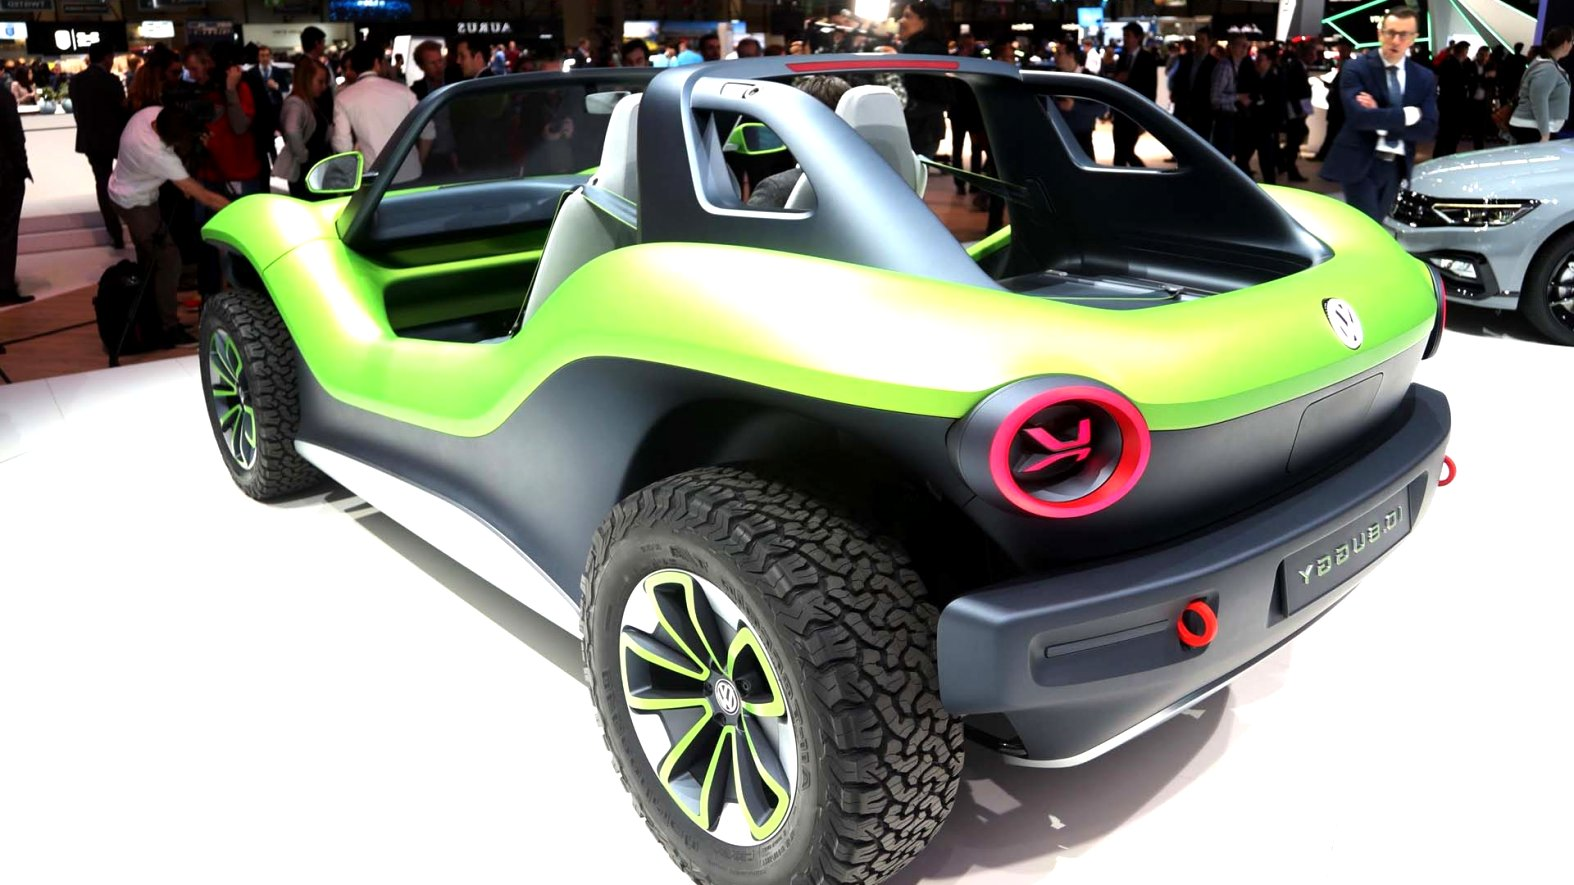 volkswagen dune buggy 2020 Price, Design and Review